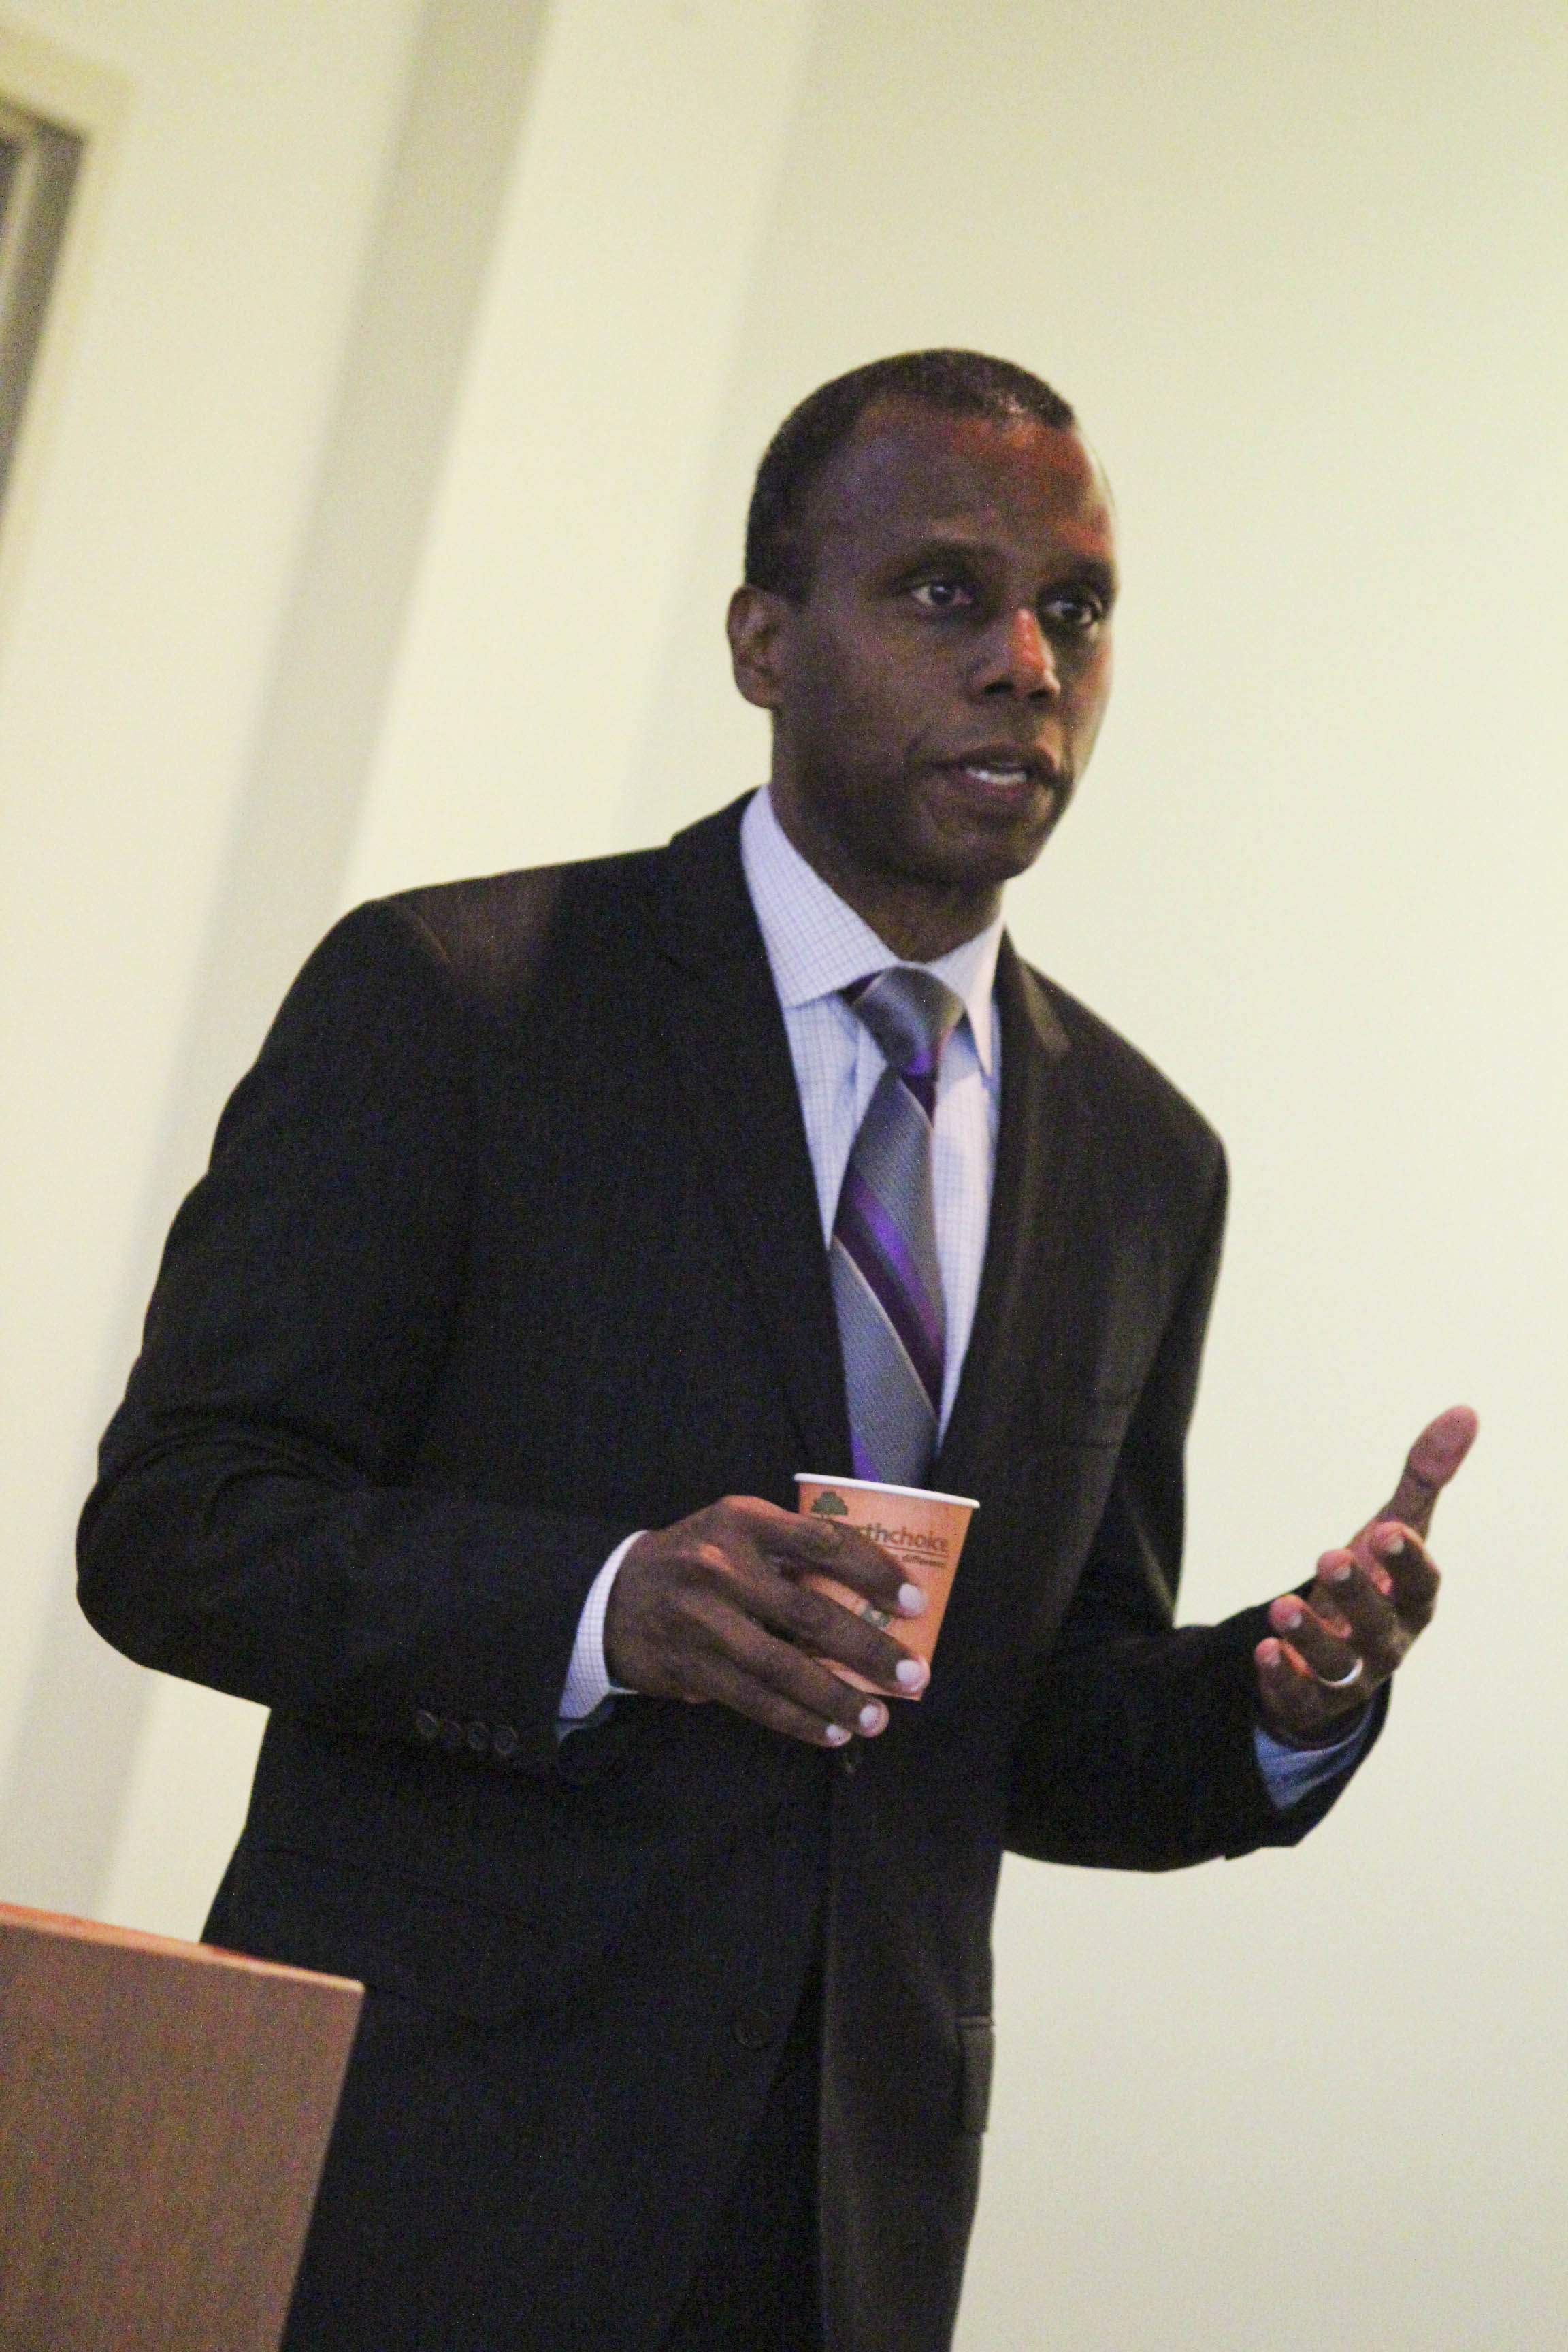 Reggie Gilyard, Dean of the Argyros School of Business and Economics